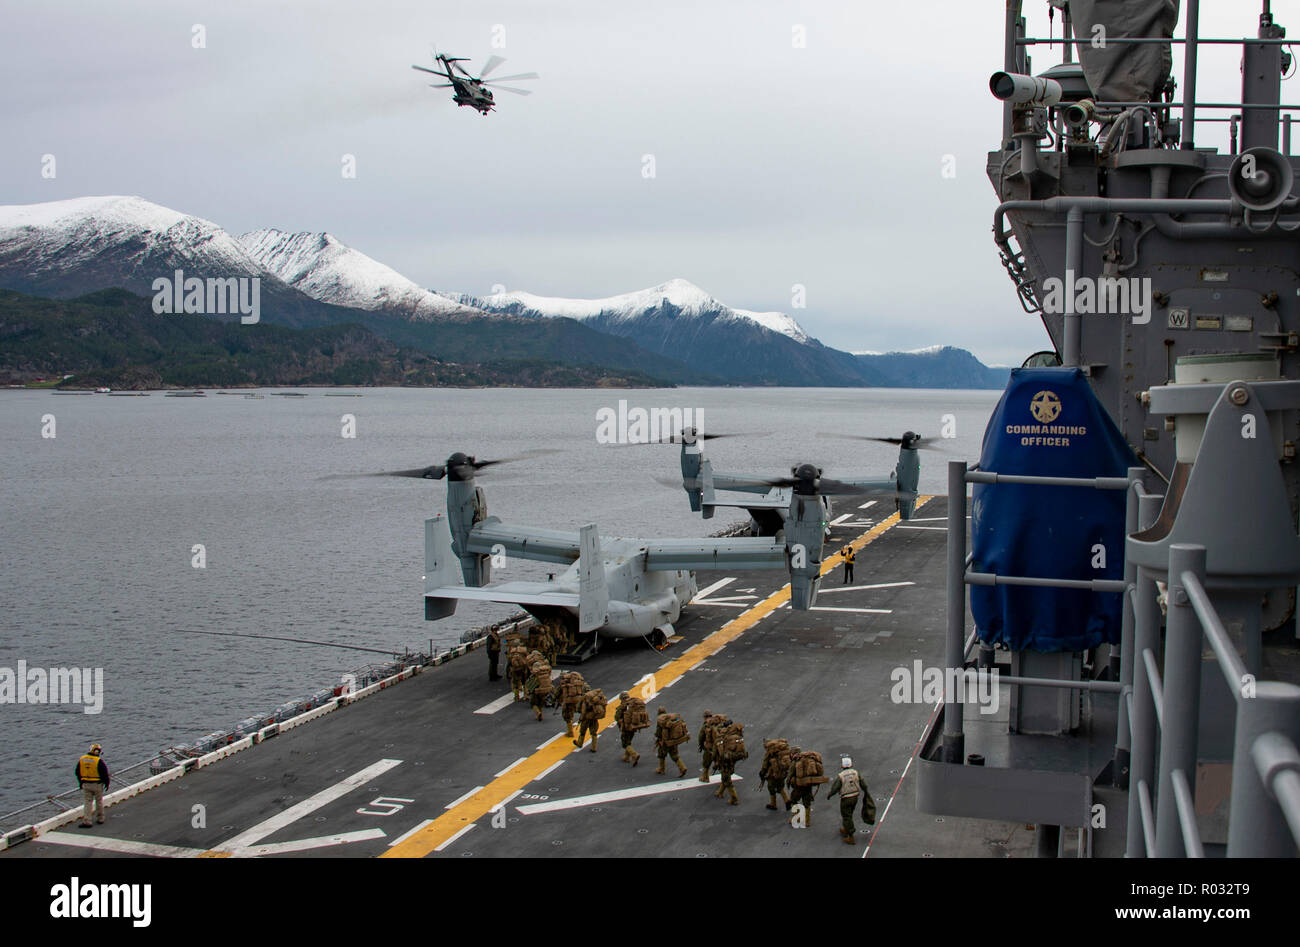 181031-N-JS726-0268    NORWEGIAN SEA (Oct. 31, 2018) Marines assigned to the 24th Marine Expeditionary Unit board an MV-22B Osprey, attached to Marine Medium Tiltrotor Squadron (VMM) 365 (Reinforced), aboard the Wasp-class amphibious assault ship USS Iwo Jima (LHD 7) while conducting operations in the Alvund Fjord during Trident Juncture 2018, Oct. 31, 2018. Trident Juncture 2018 is a NATO-led exercise designed to certify NATO response forces and develop interoperability among participating NATO Allies and partner nations. (U.S. Navy photo by Chief Mass Communication Specialist David Holmes/Re Stock Photo